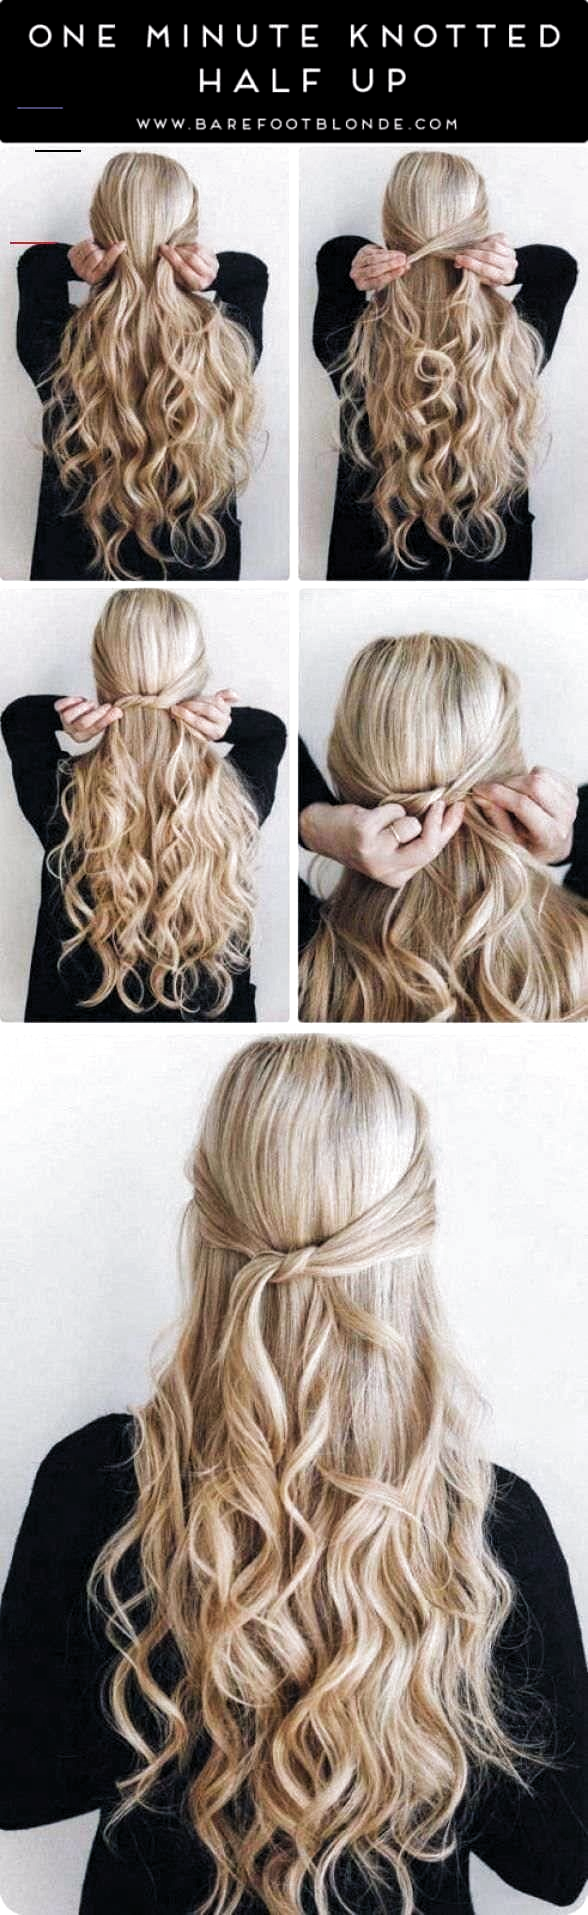 Photo of Amazing Half Up-Half Down Hairstyles For Long Hair – One Minute Knotted Half Up …